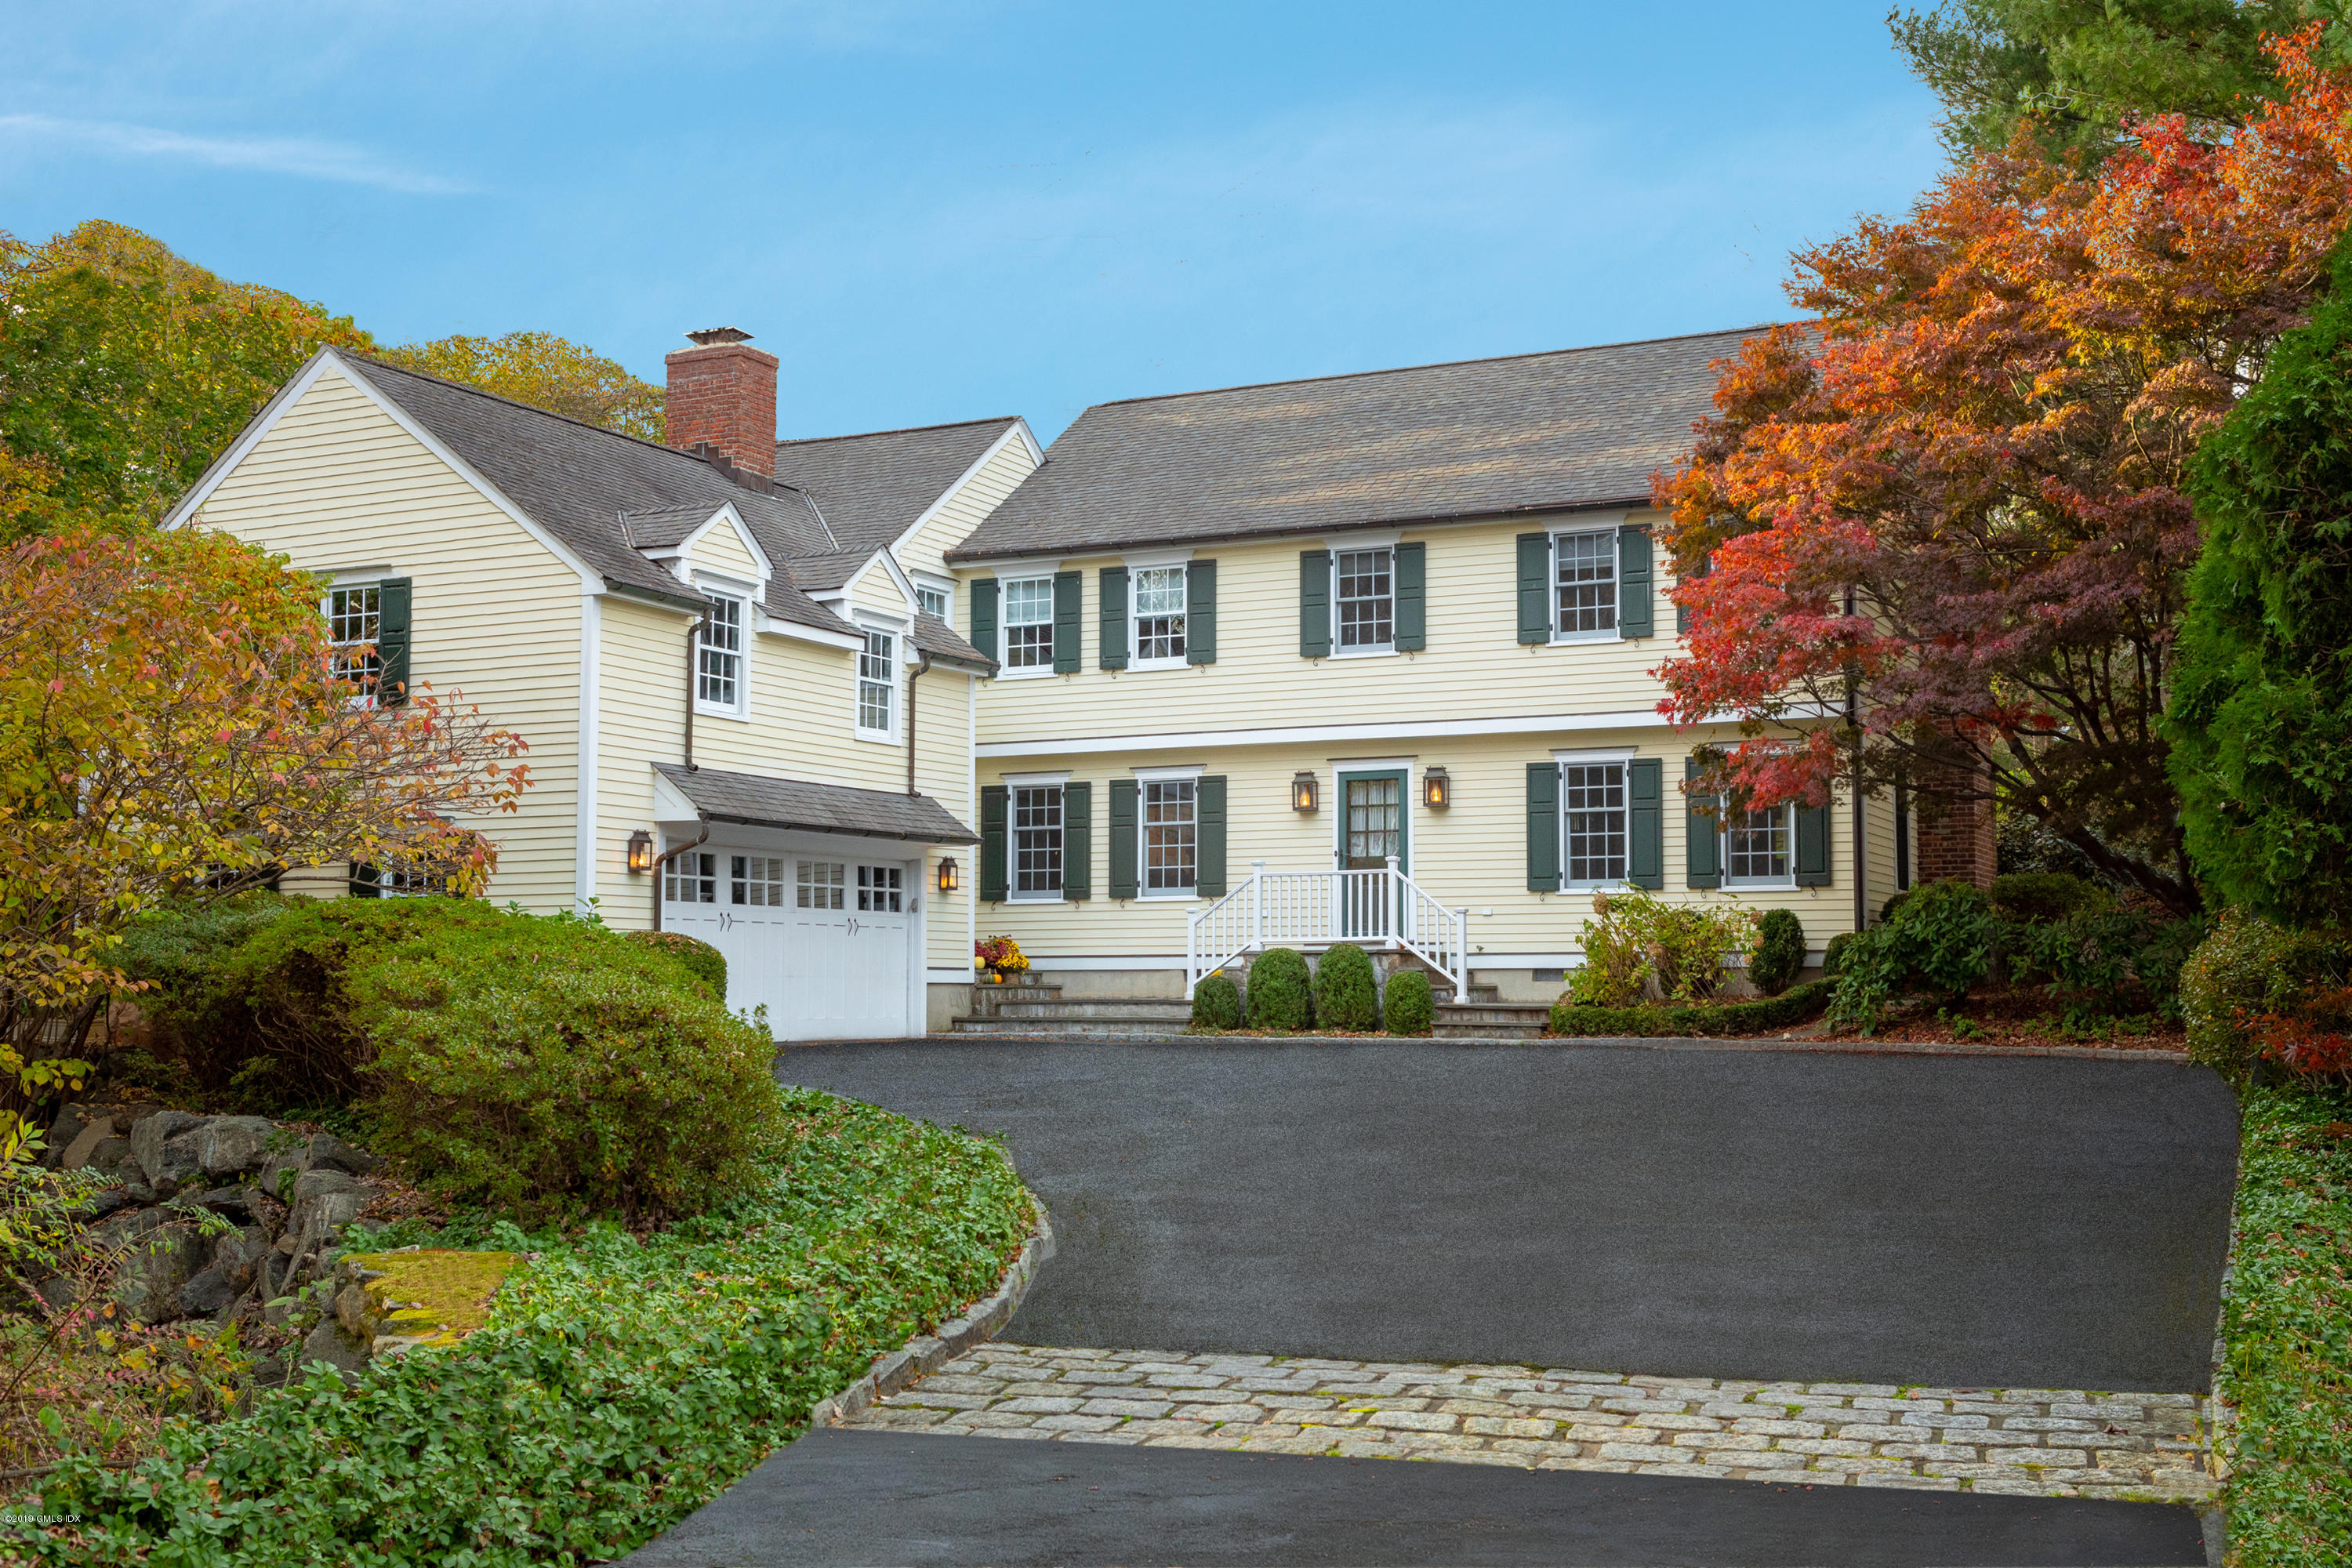 41 Angus Lane, Greenwich, Connecticut 06831, 4 Bedrooms Bedrooms, ,3 BathroomsBathrooms,Single family,For sale,Angus,112280